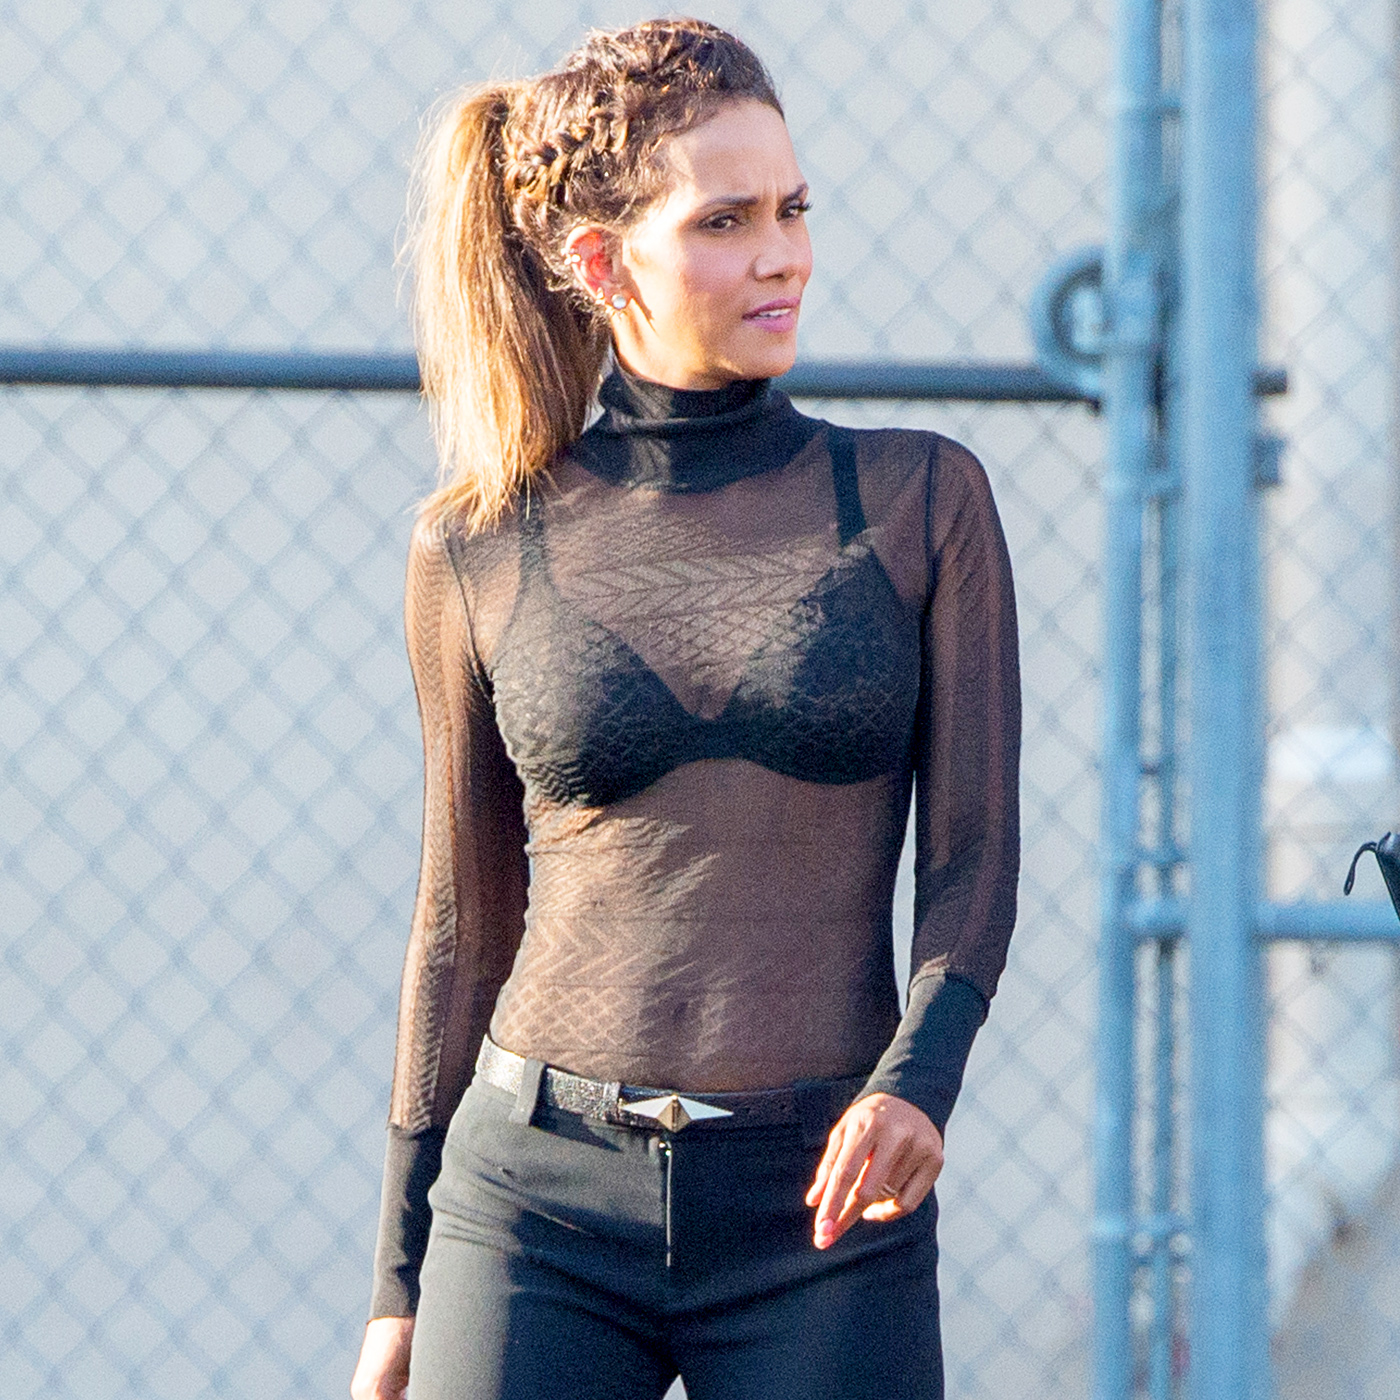 Halle berry see through new images